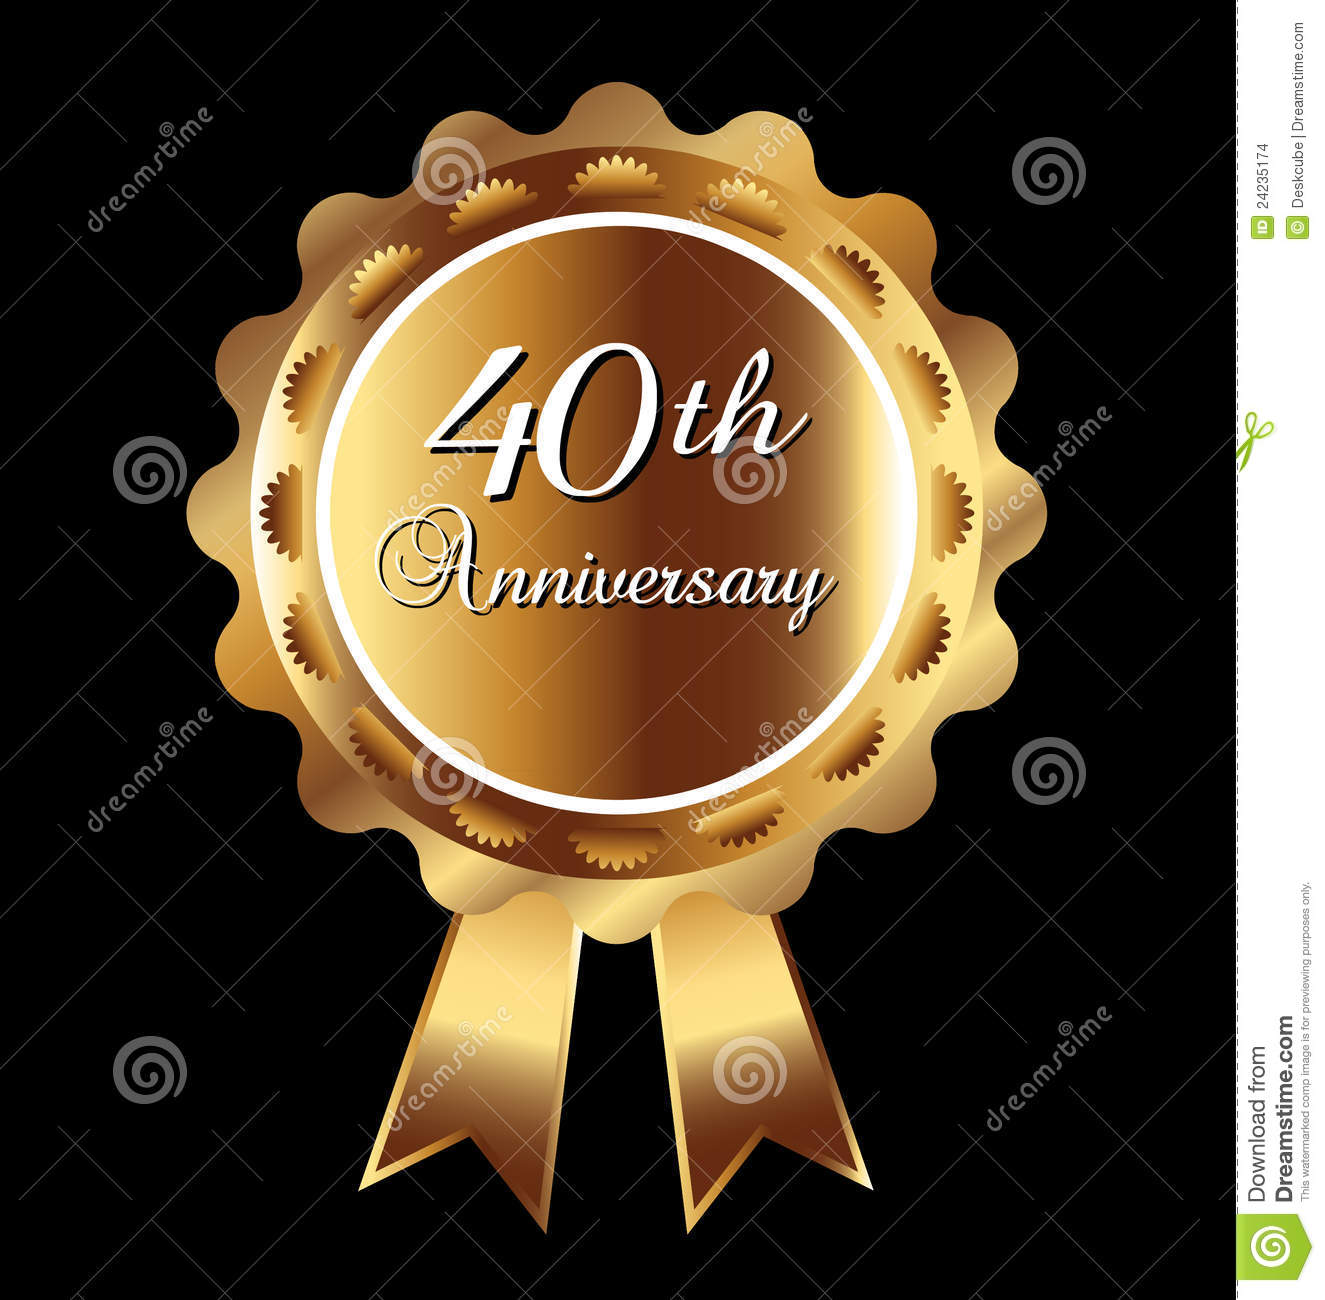 40th anniversary medal stock vector. Image of isolated ...